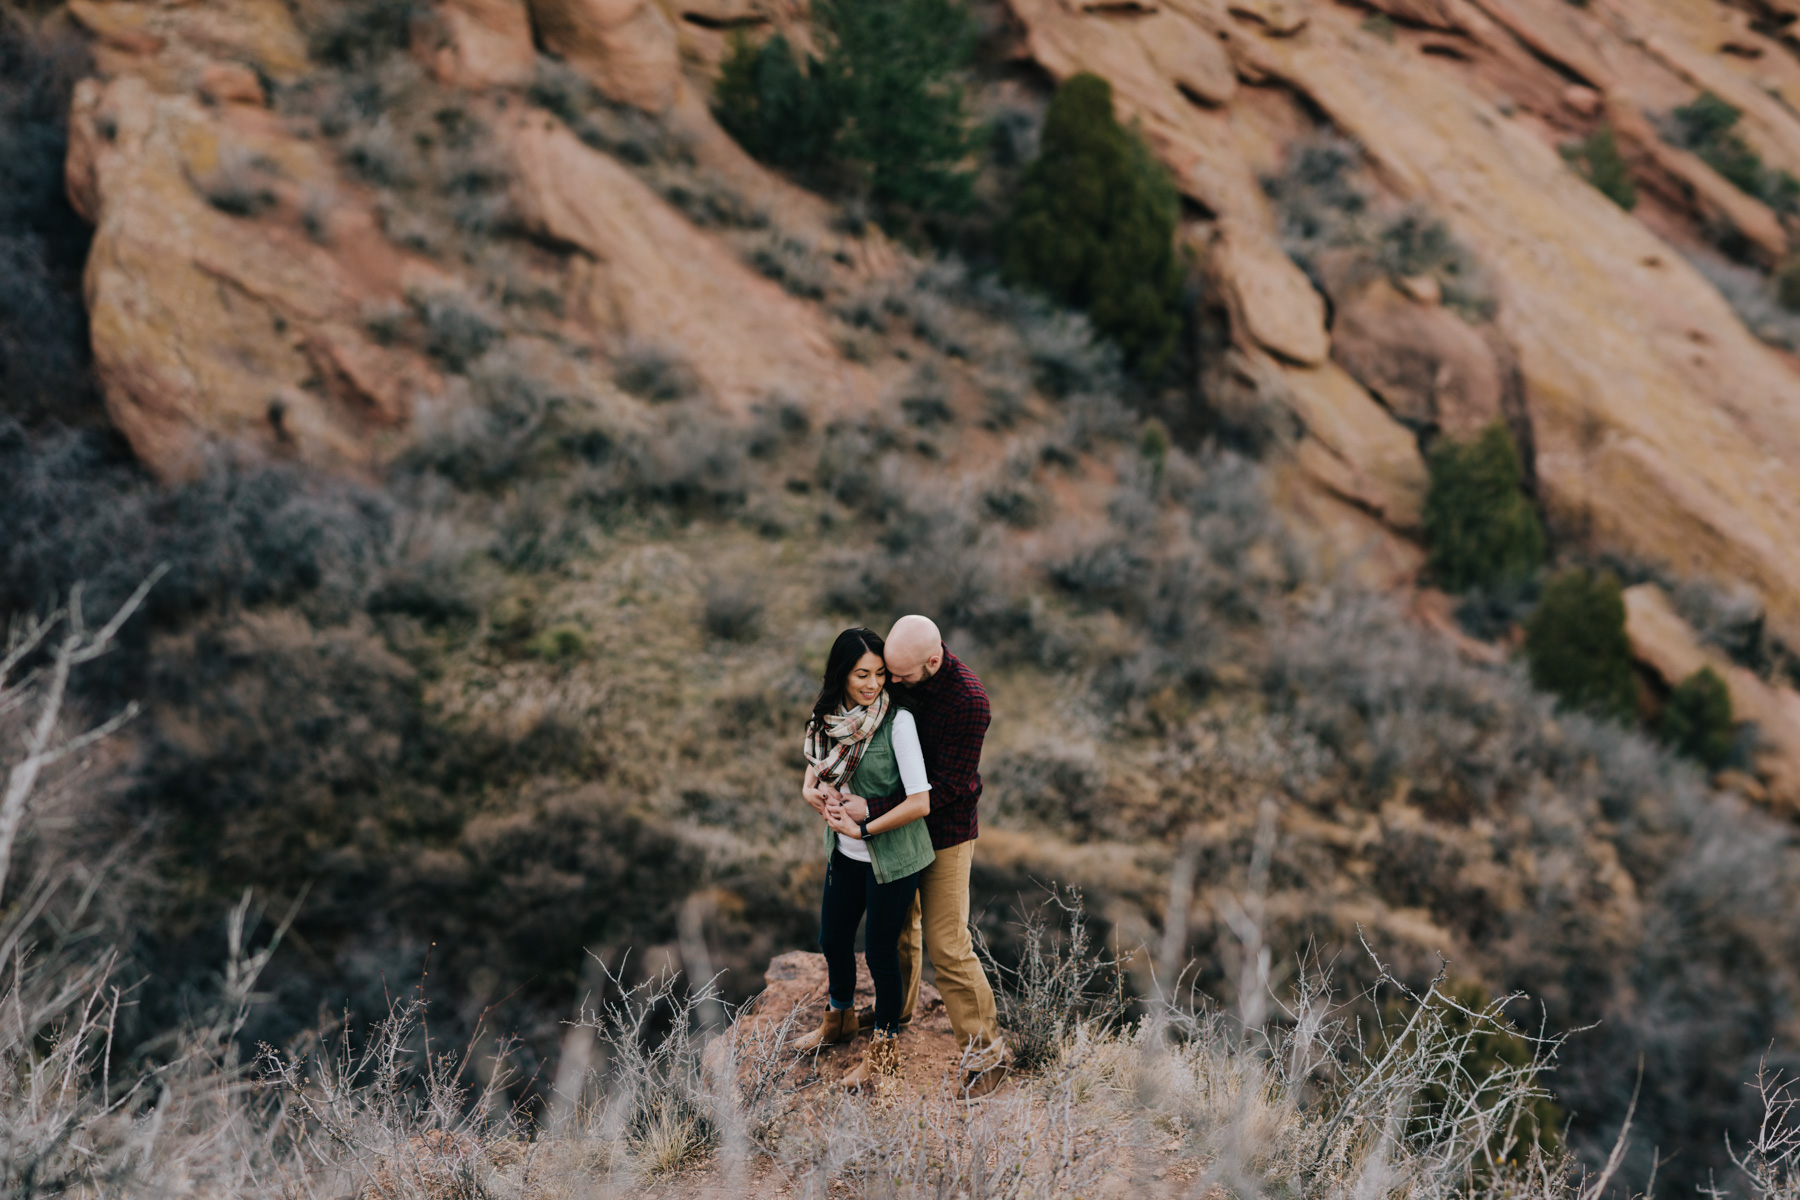 Red Rocks has so many hidden gems - this hike being one of them! This is a 26 pic-stitch image we did with Daisy and Brett!